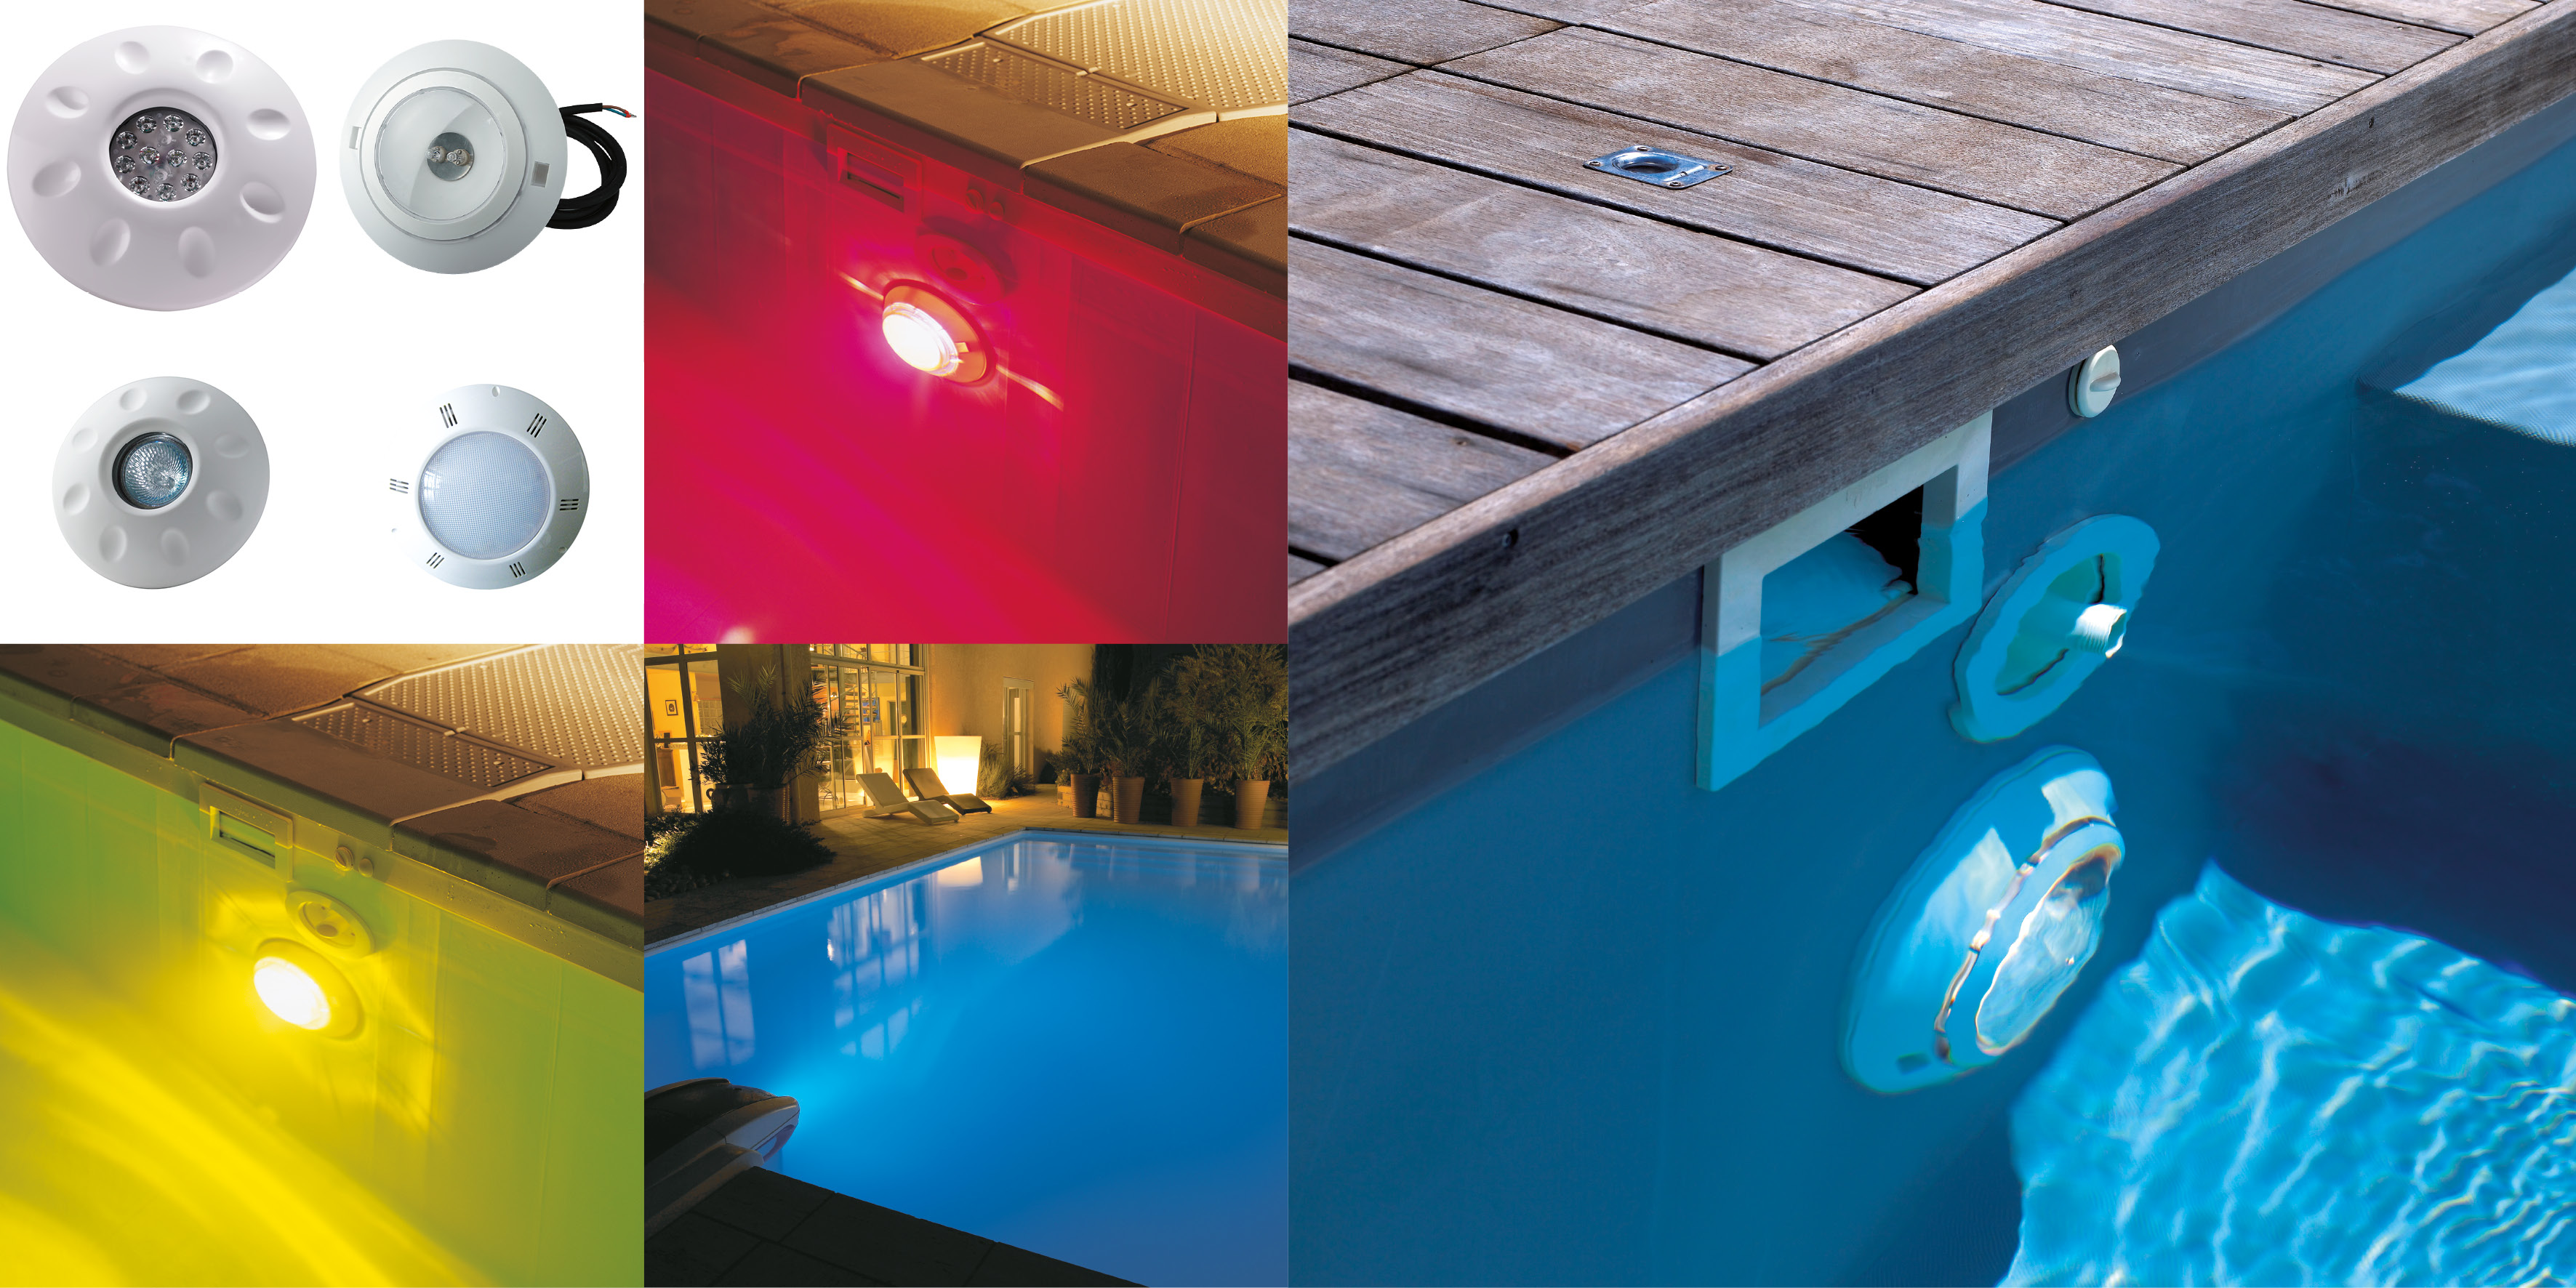 Projecteur piscine on vous claire la boutique desjoyaux for Boutique piscine